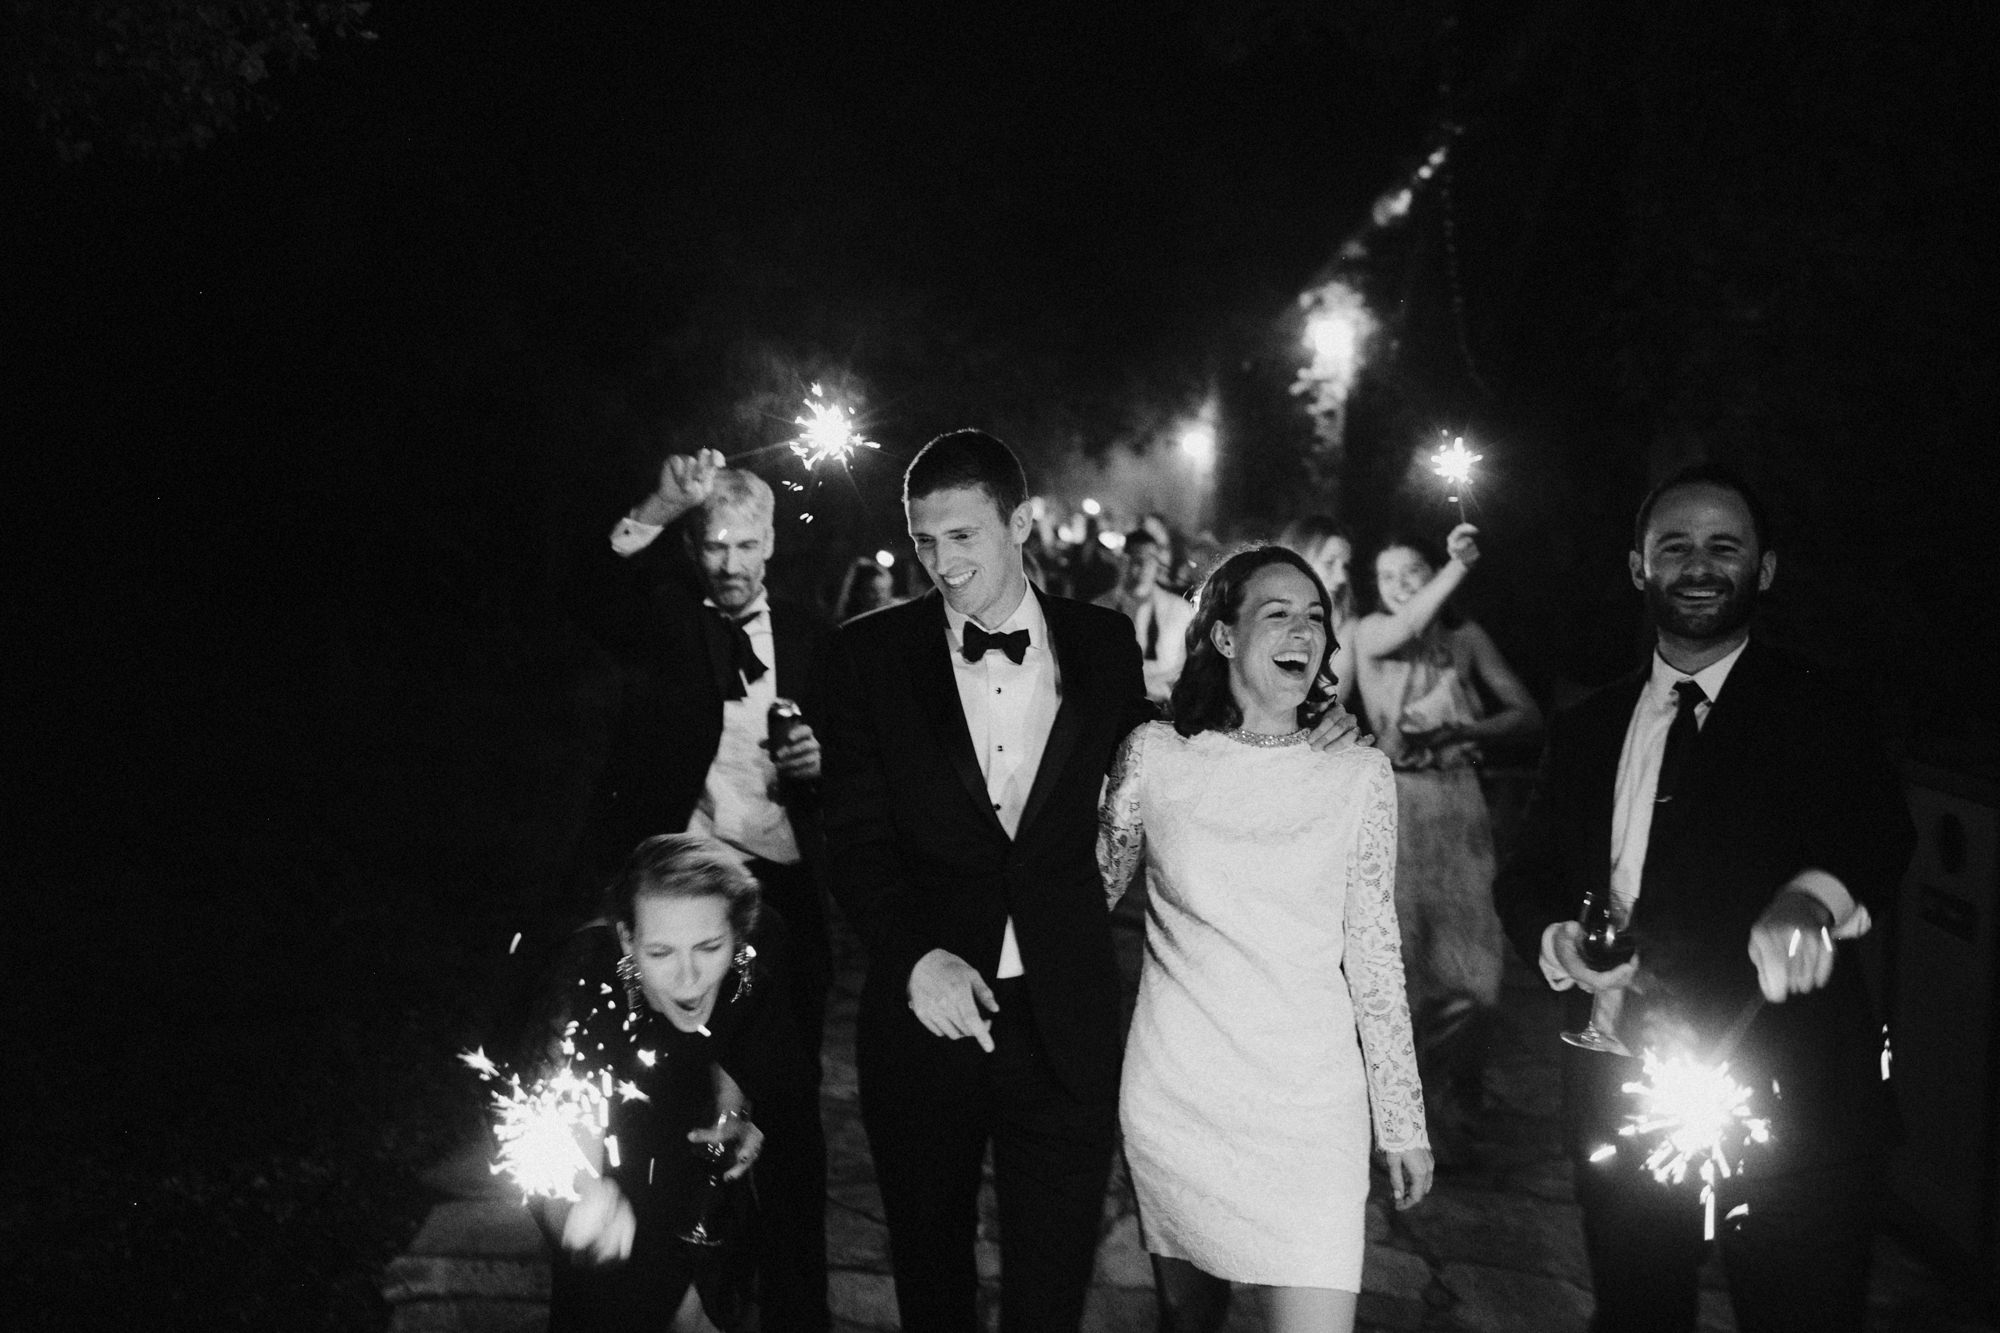 Black and white sparkler exit photo by James Moes